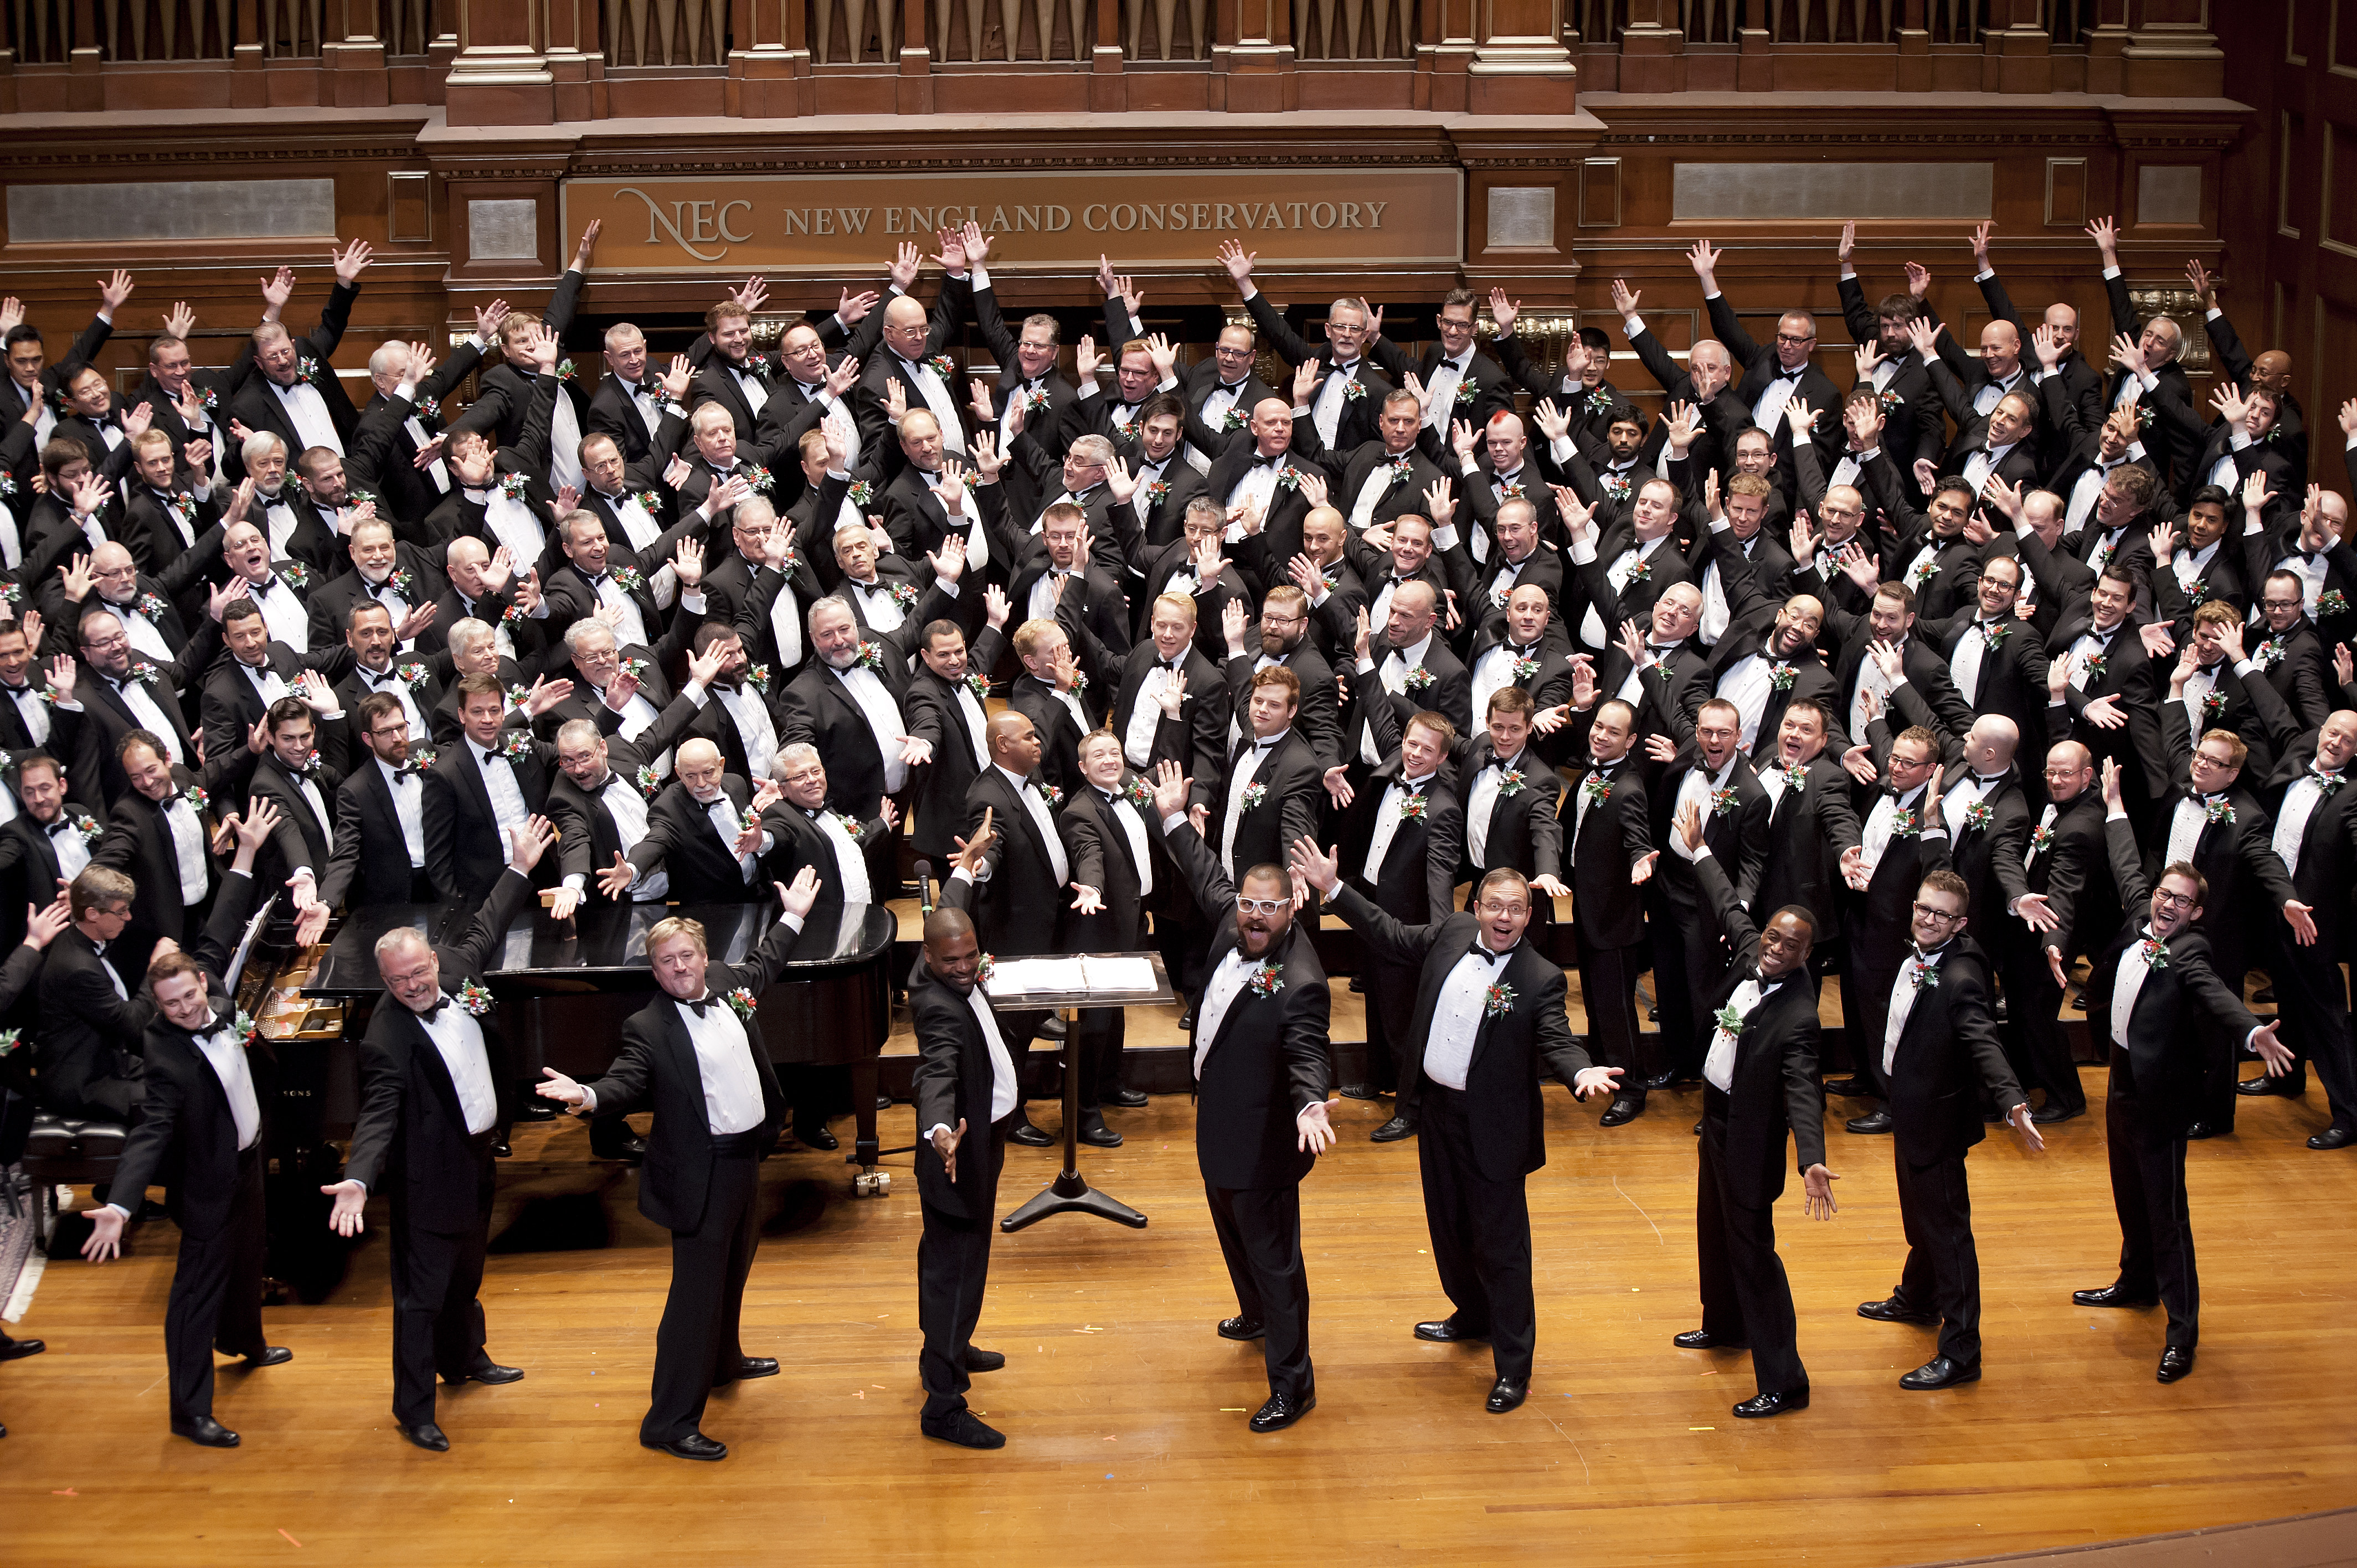 vermont article boston mens chorus host live latchis fundraiser today